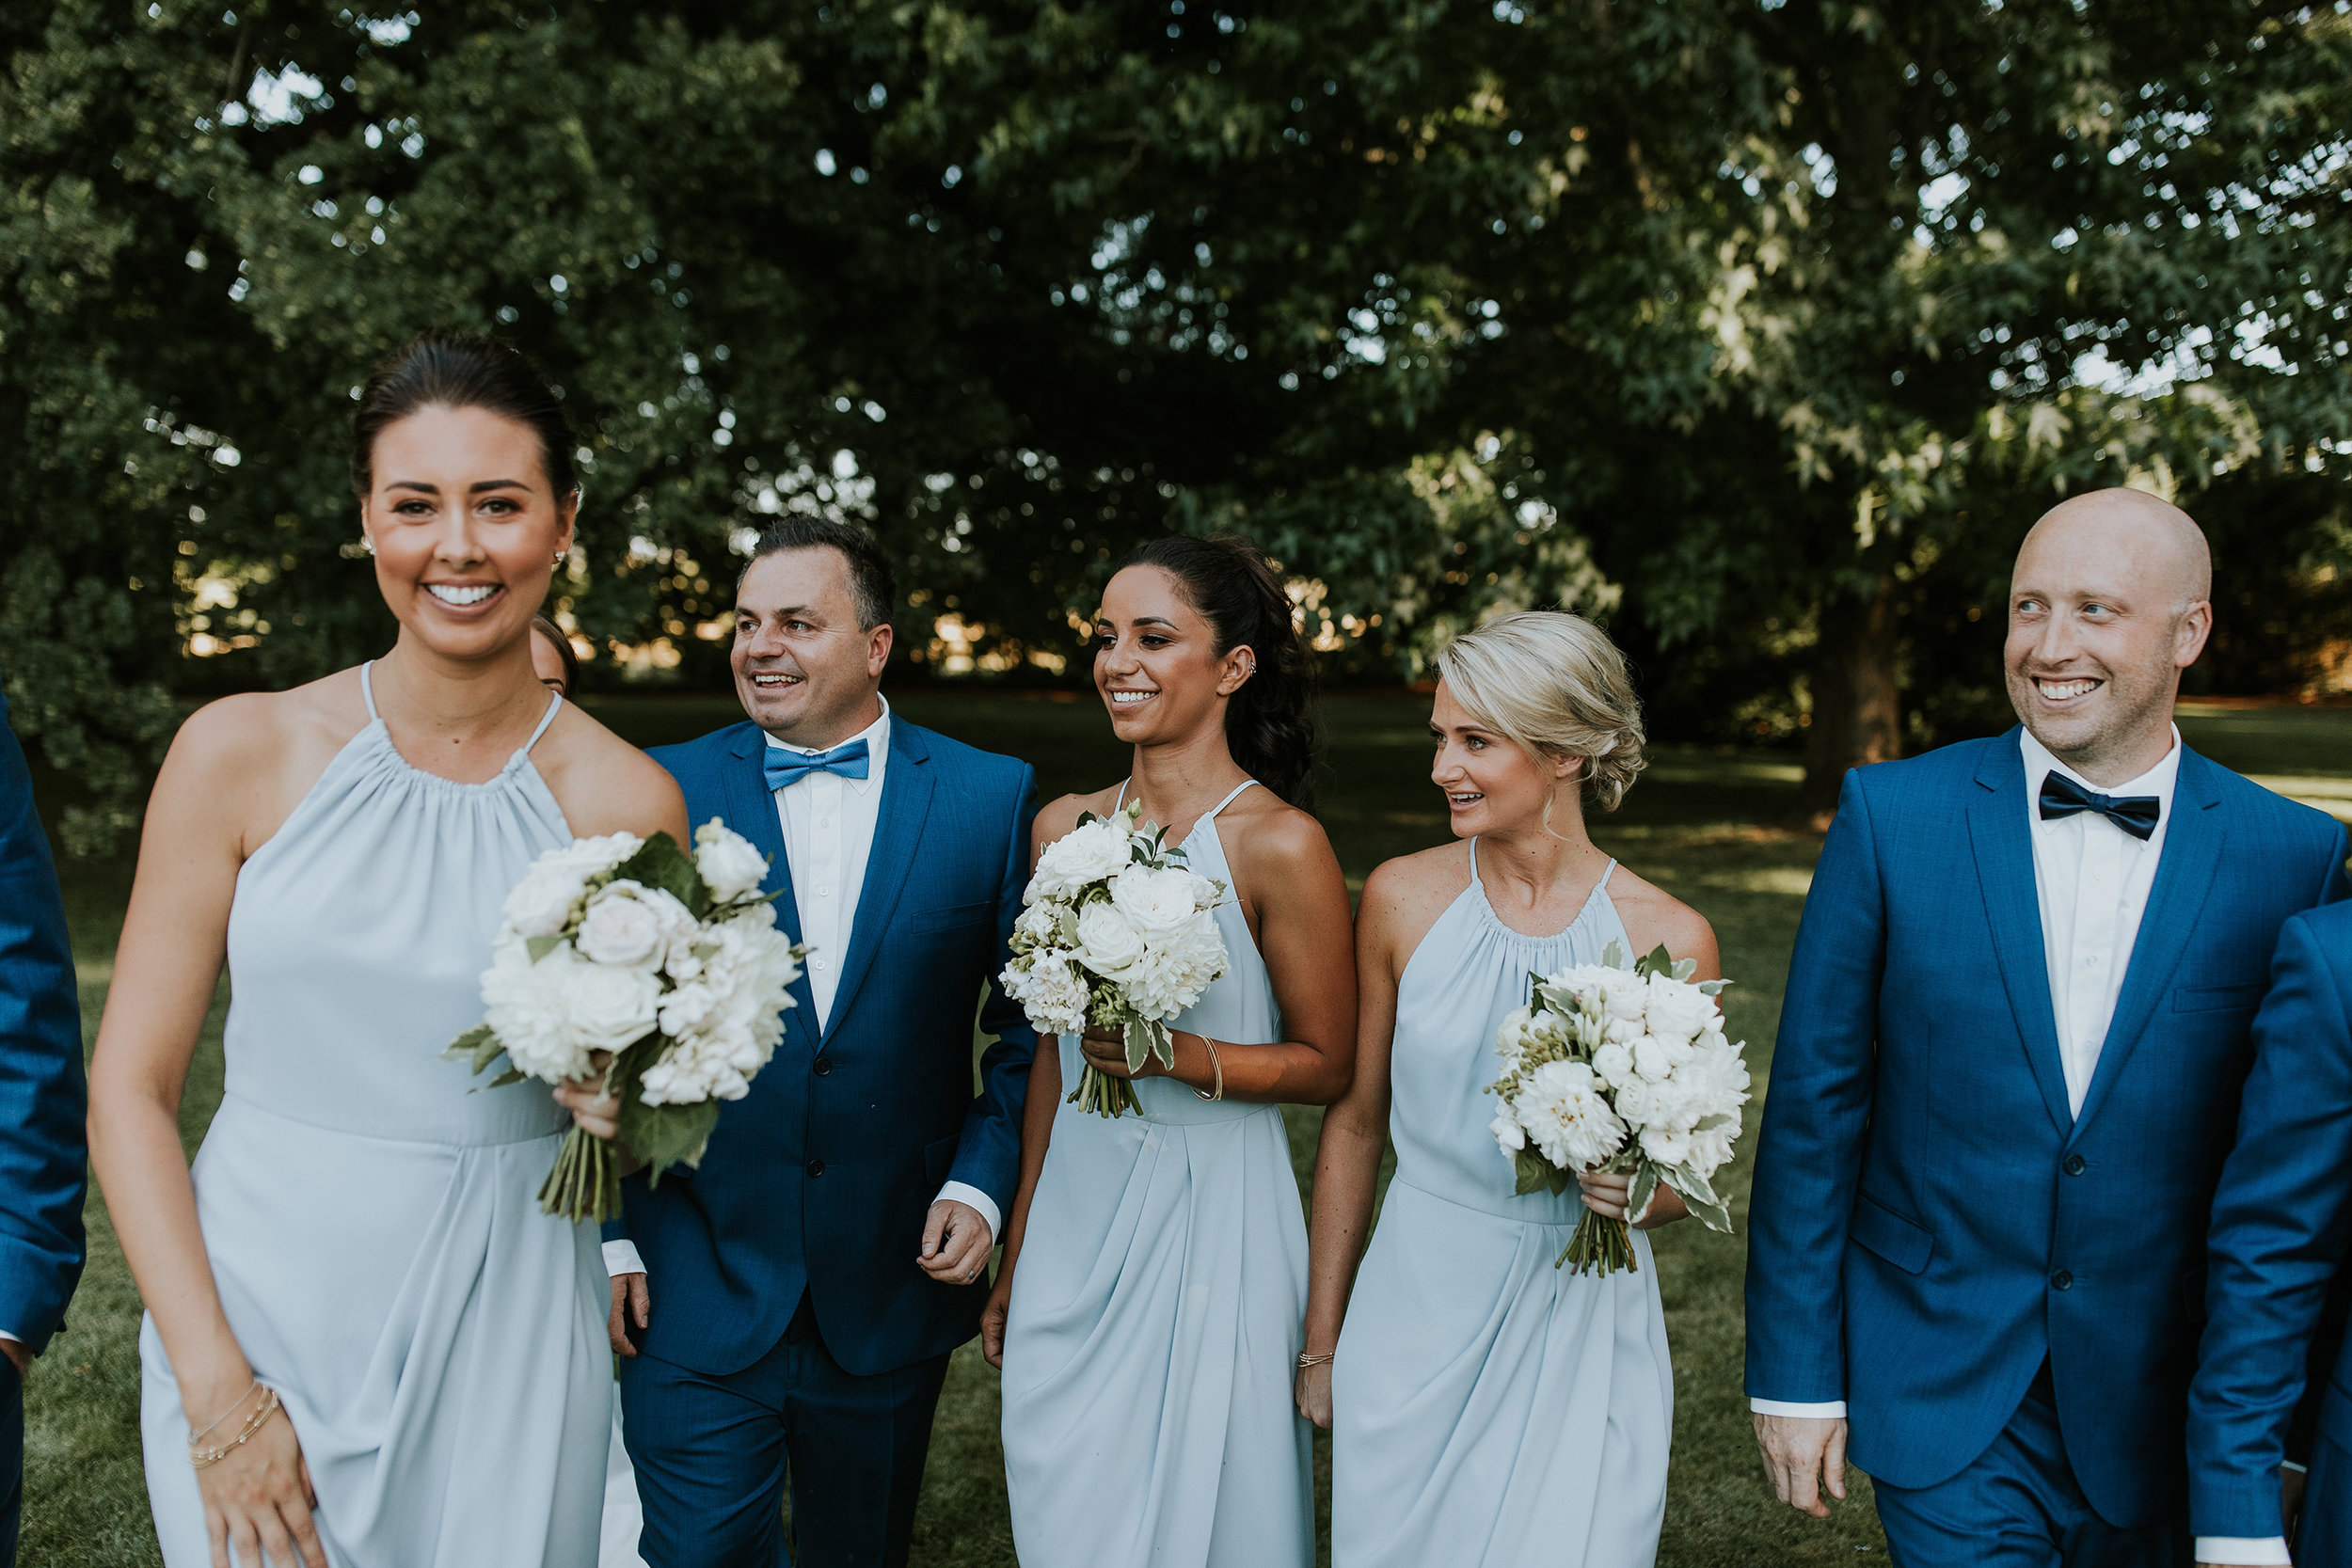 """Keli's bridesmaids wore Shona Joy dresses in powder blue. """"They were simple and elegant and the girls looked beautiful beside the groomsmen in their navy suits."""""""